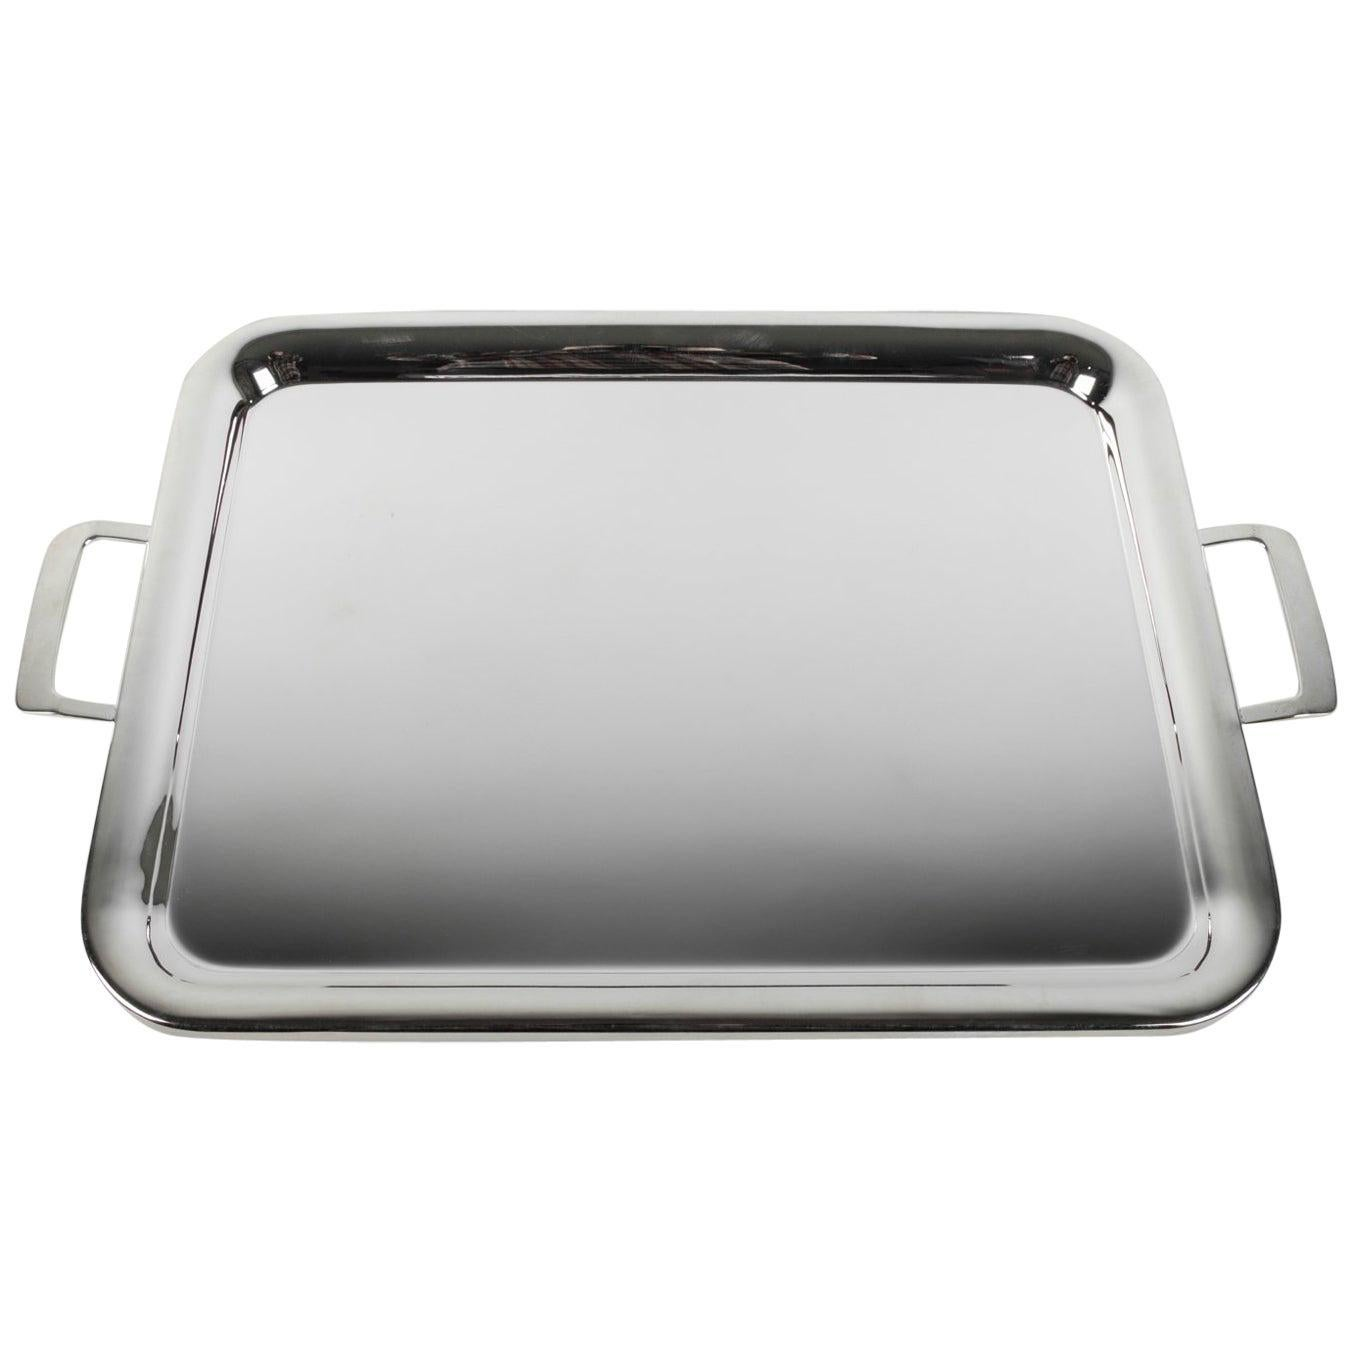 Large Silver Plated Barware or Tableware Tray